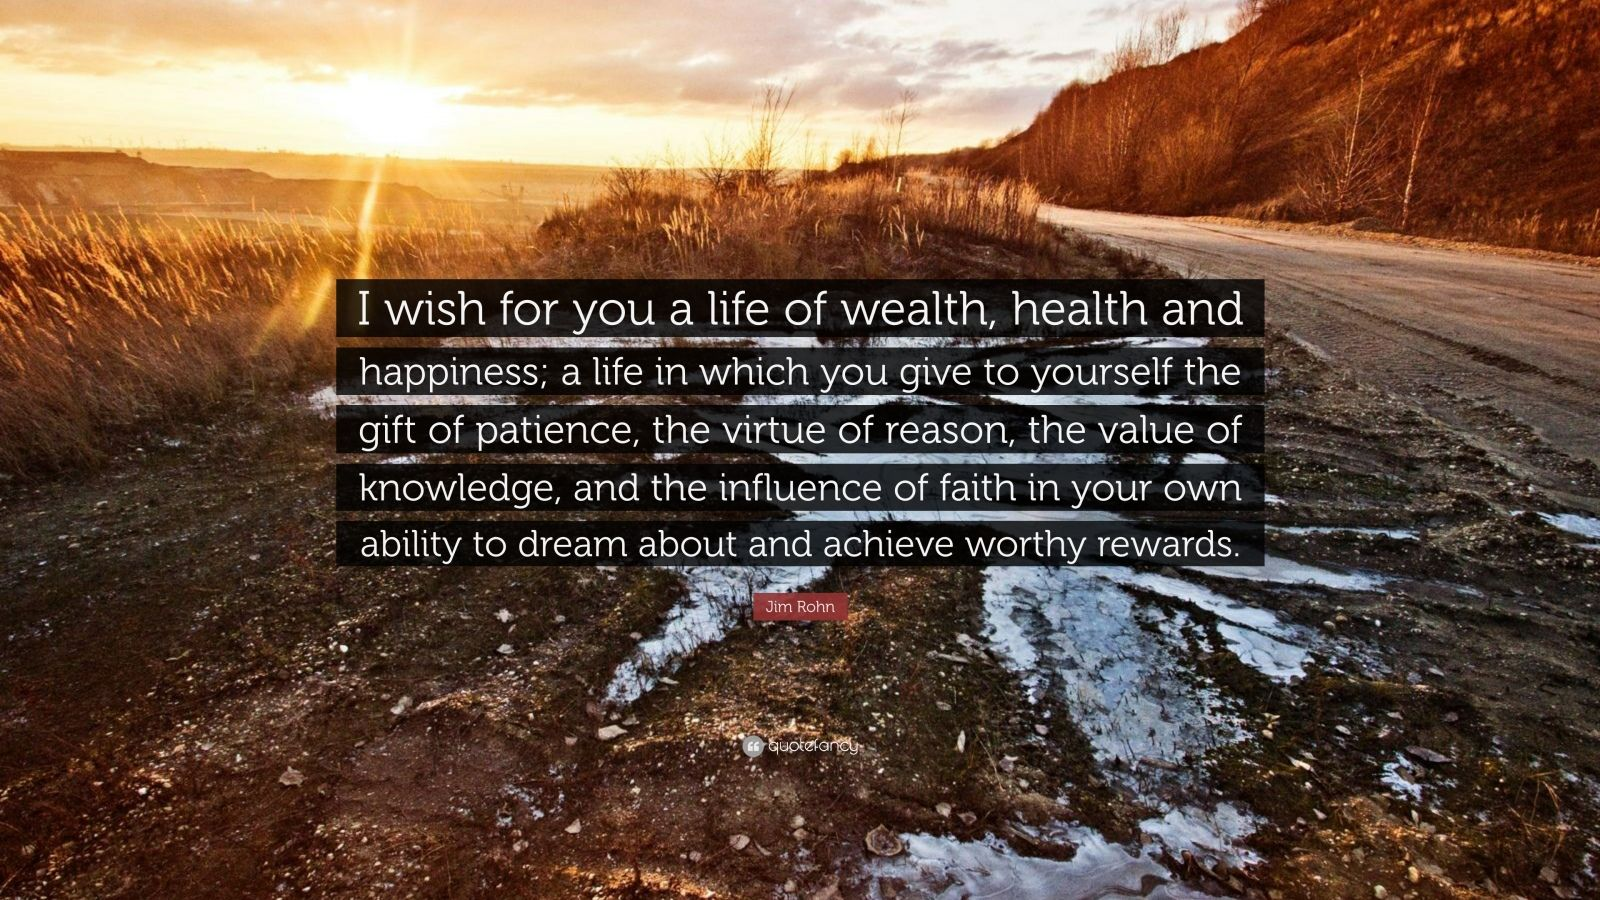 "Jim Rohn Quote: ""I wish for you a life of wealth, health and happiness; a life in which you give to yourself the gift of patience, the virtue of reason, the value of knowledge, and the influence of faith in your own ability to dream about and achieve worthy rewards."""